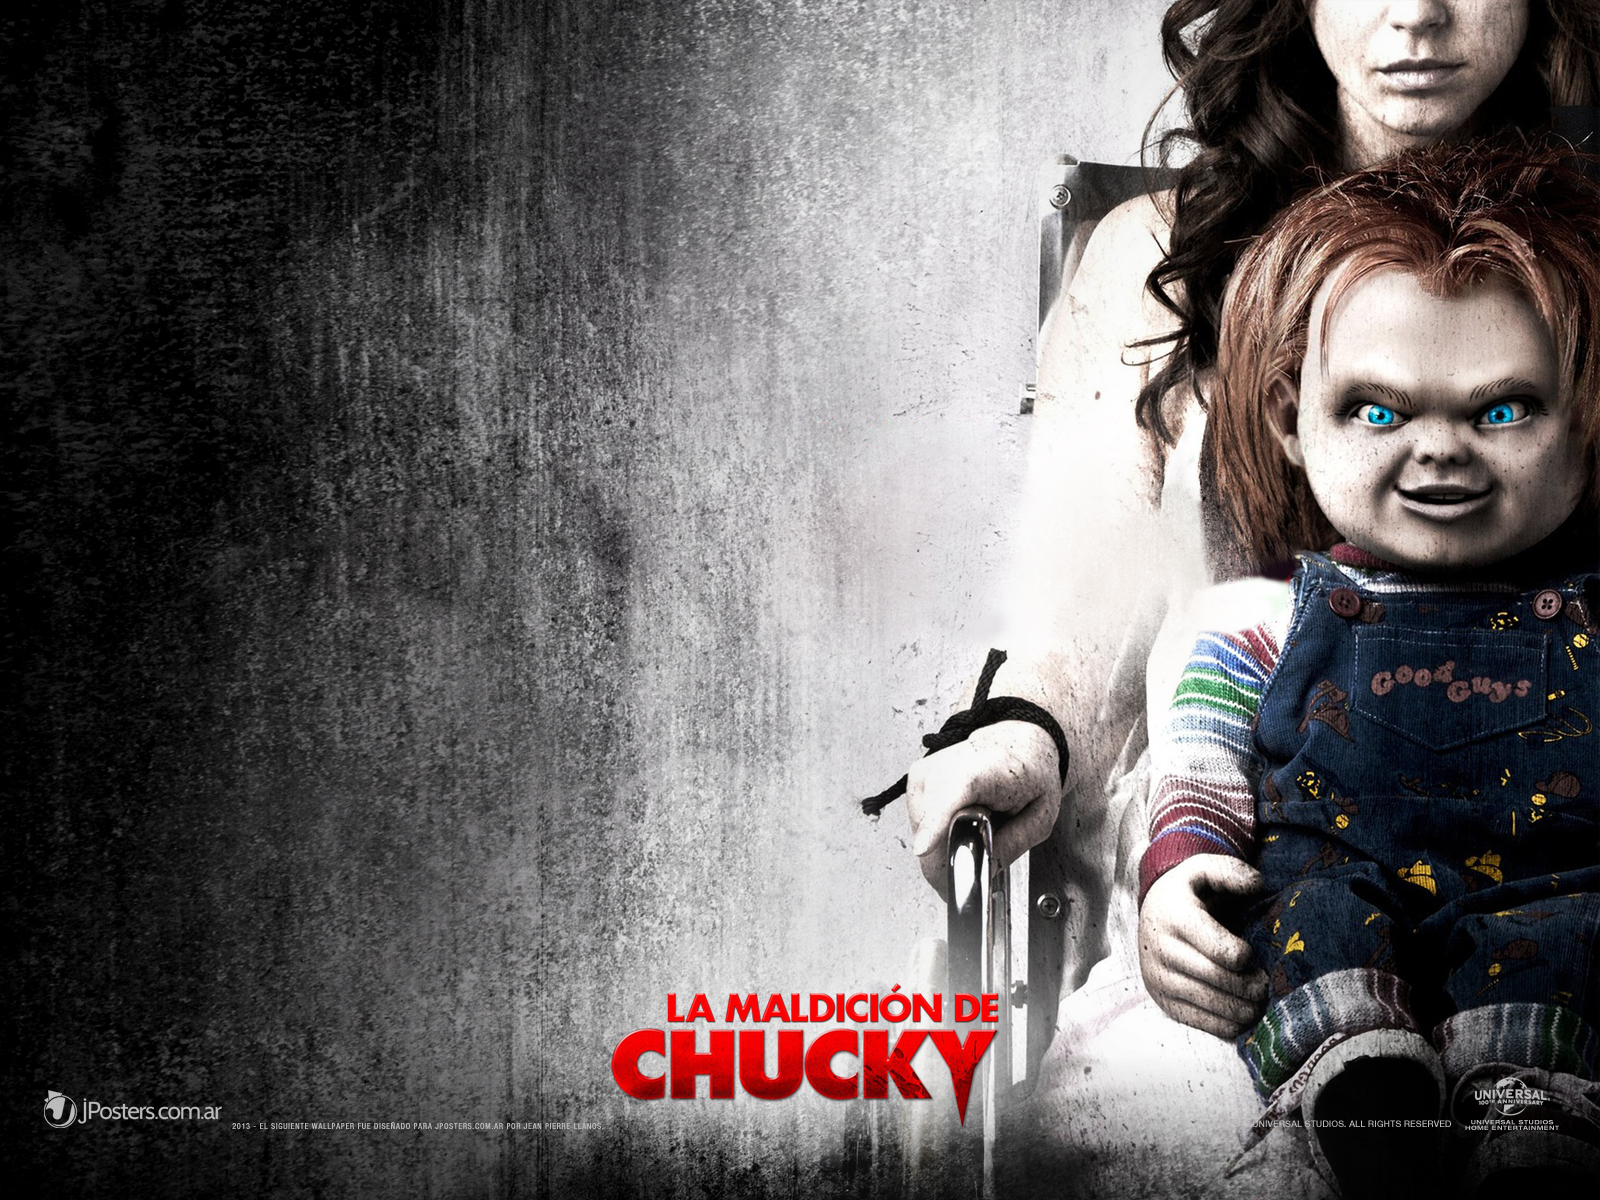 Wallpaper latino de curse of chucky diferentes resoluciones wallpaper latino de curse of chucky diferentes resoluciones voltagebd Choice Image